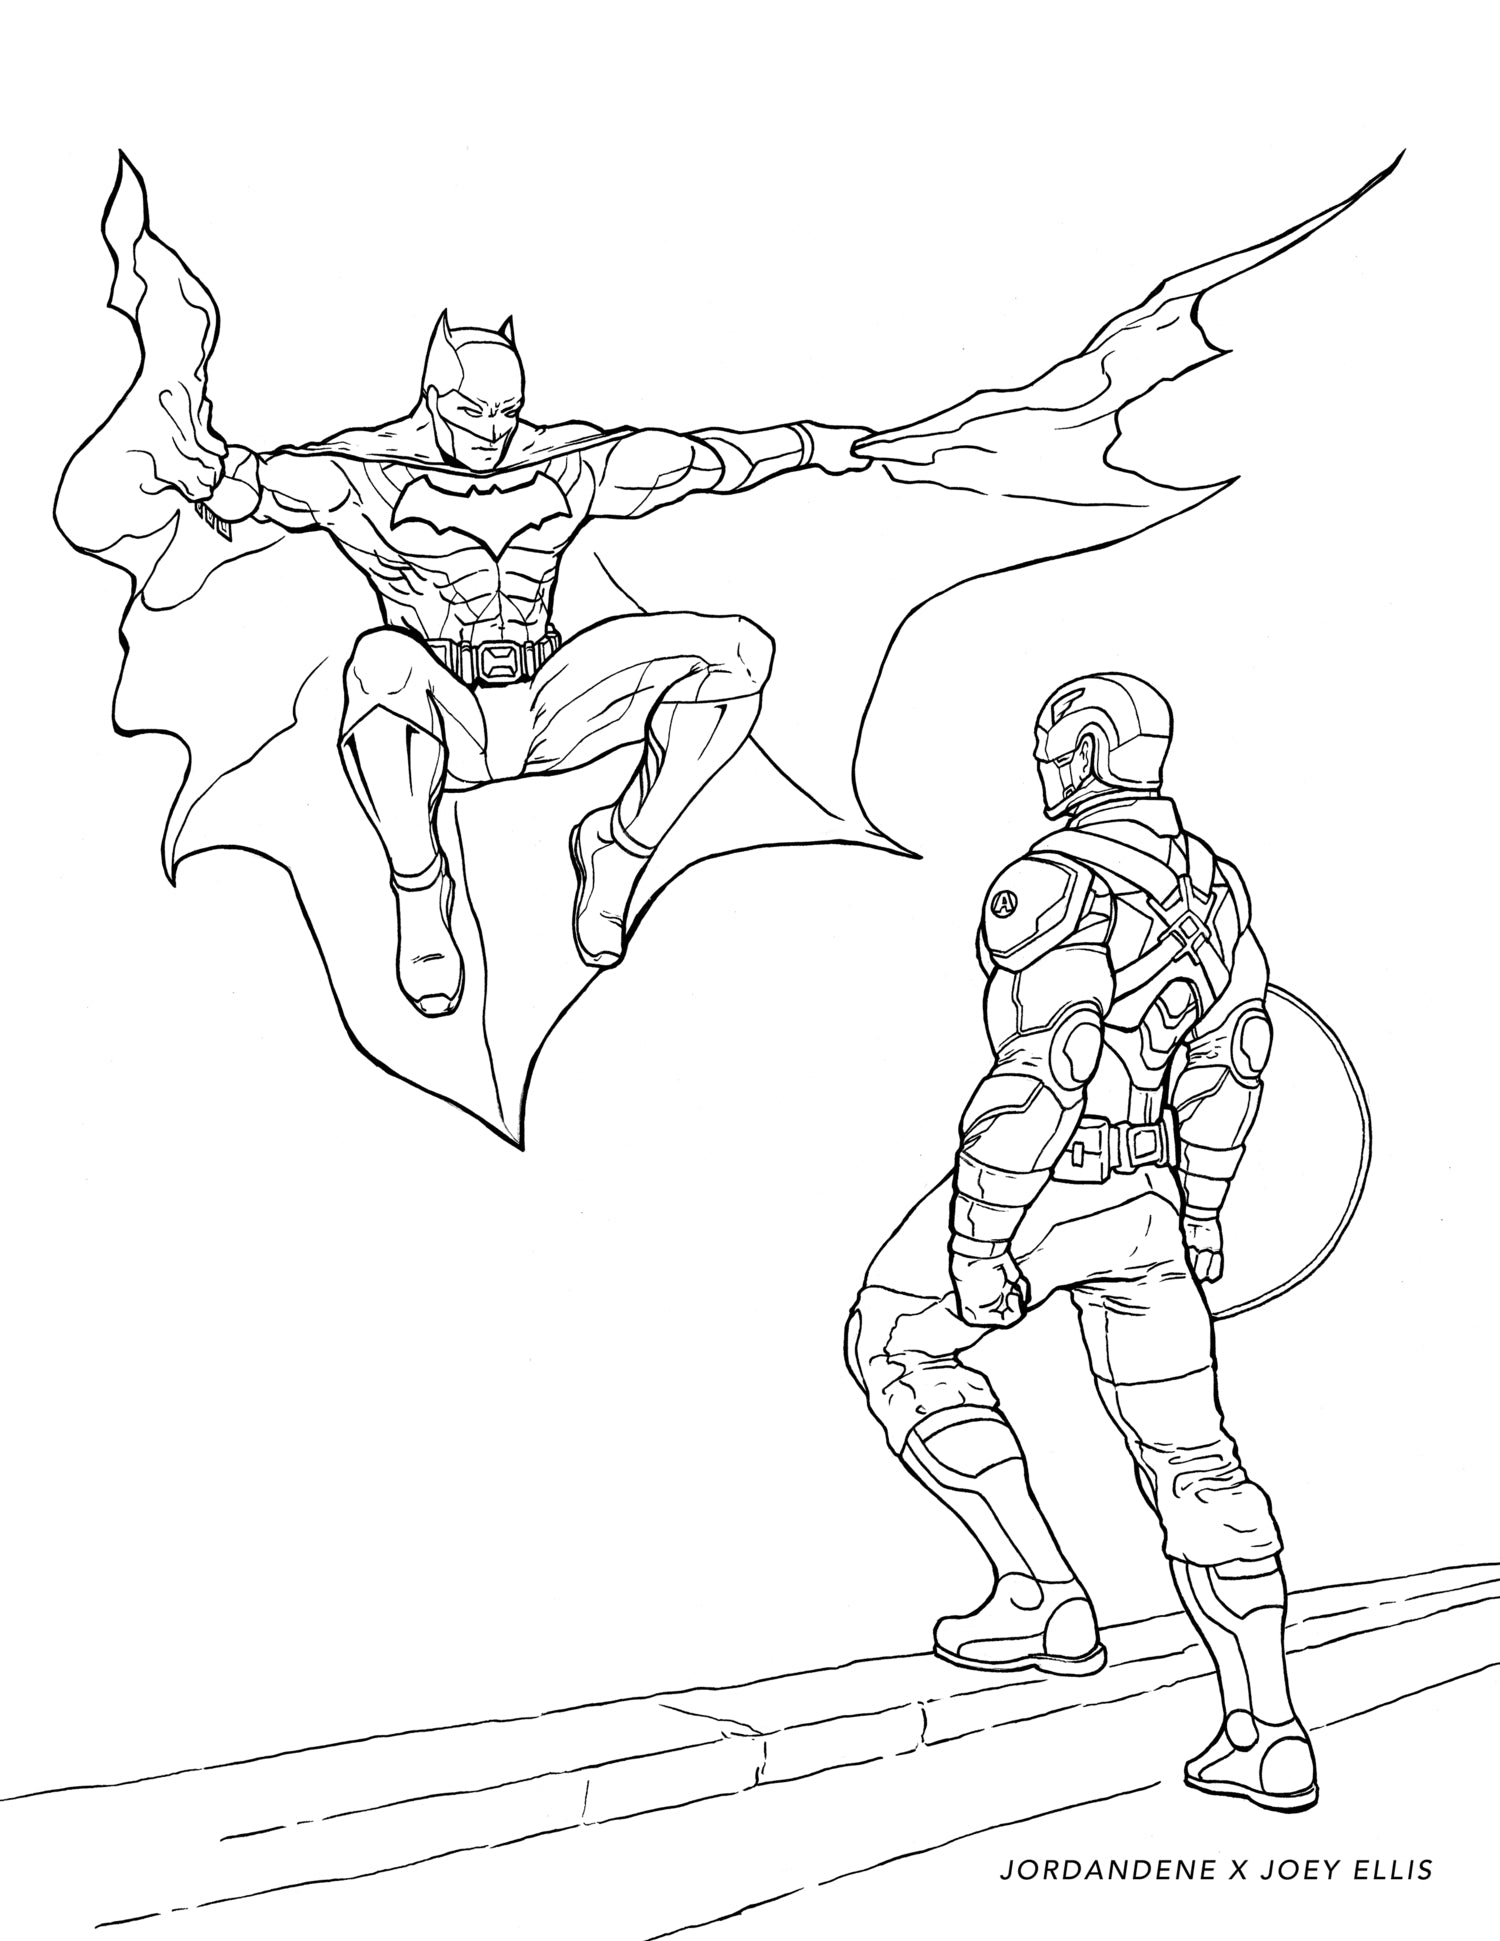 Batman vs. Captain America Free Coloring Page – jordandene